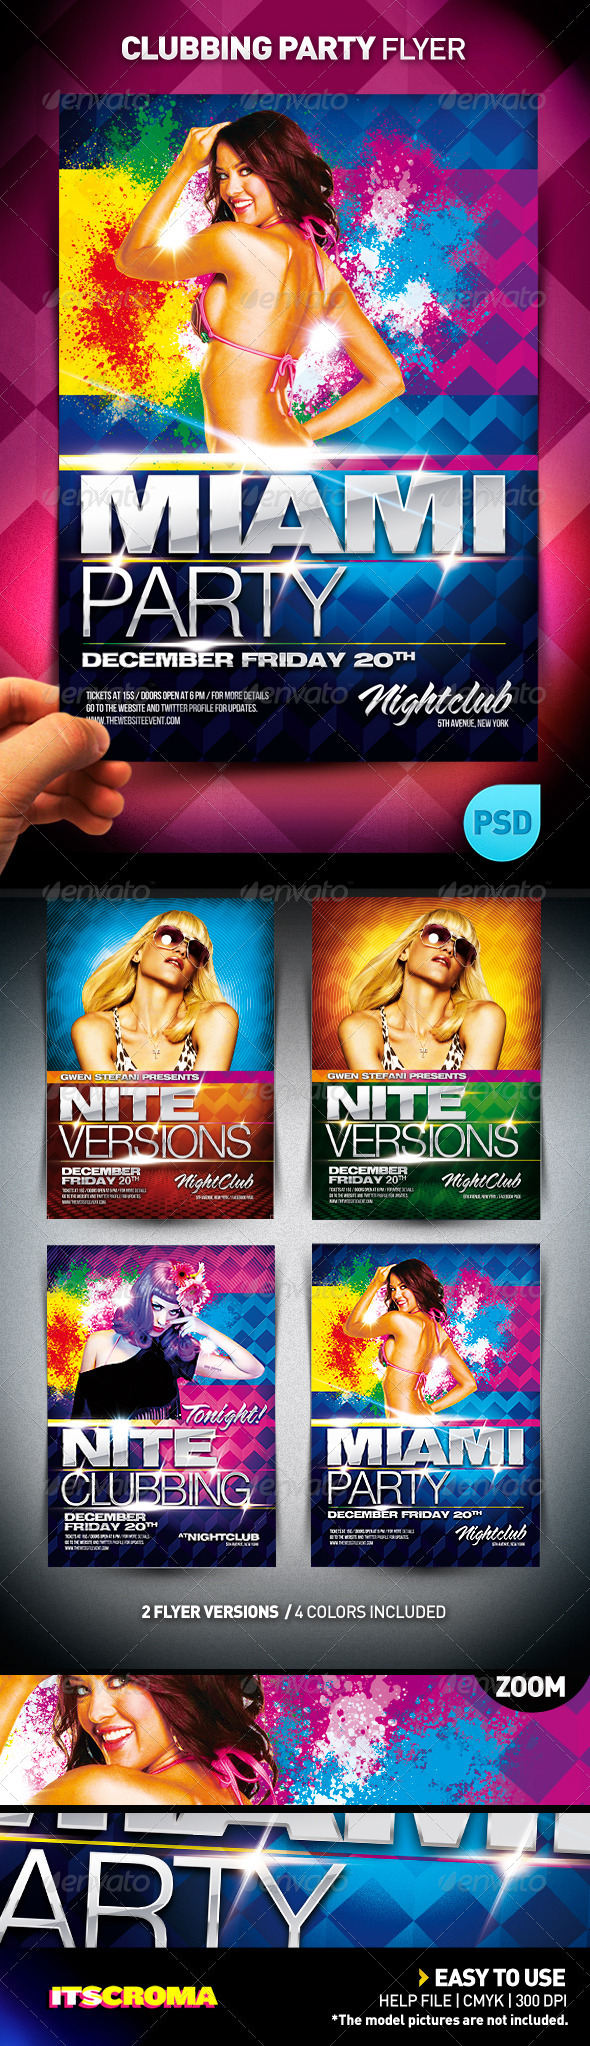 Graphic River Clubbing Party Flyer Print Templates -  Flyers  Events  Clubs & Parties 757168